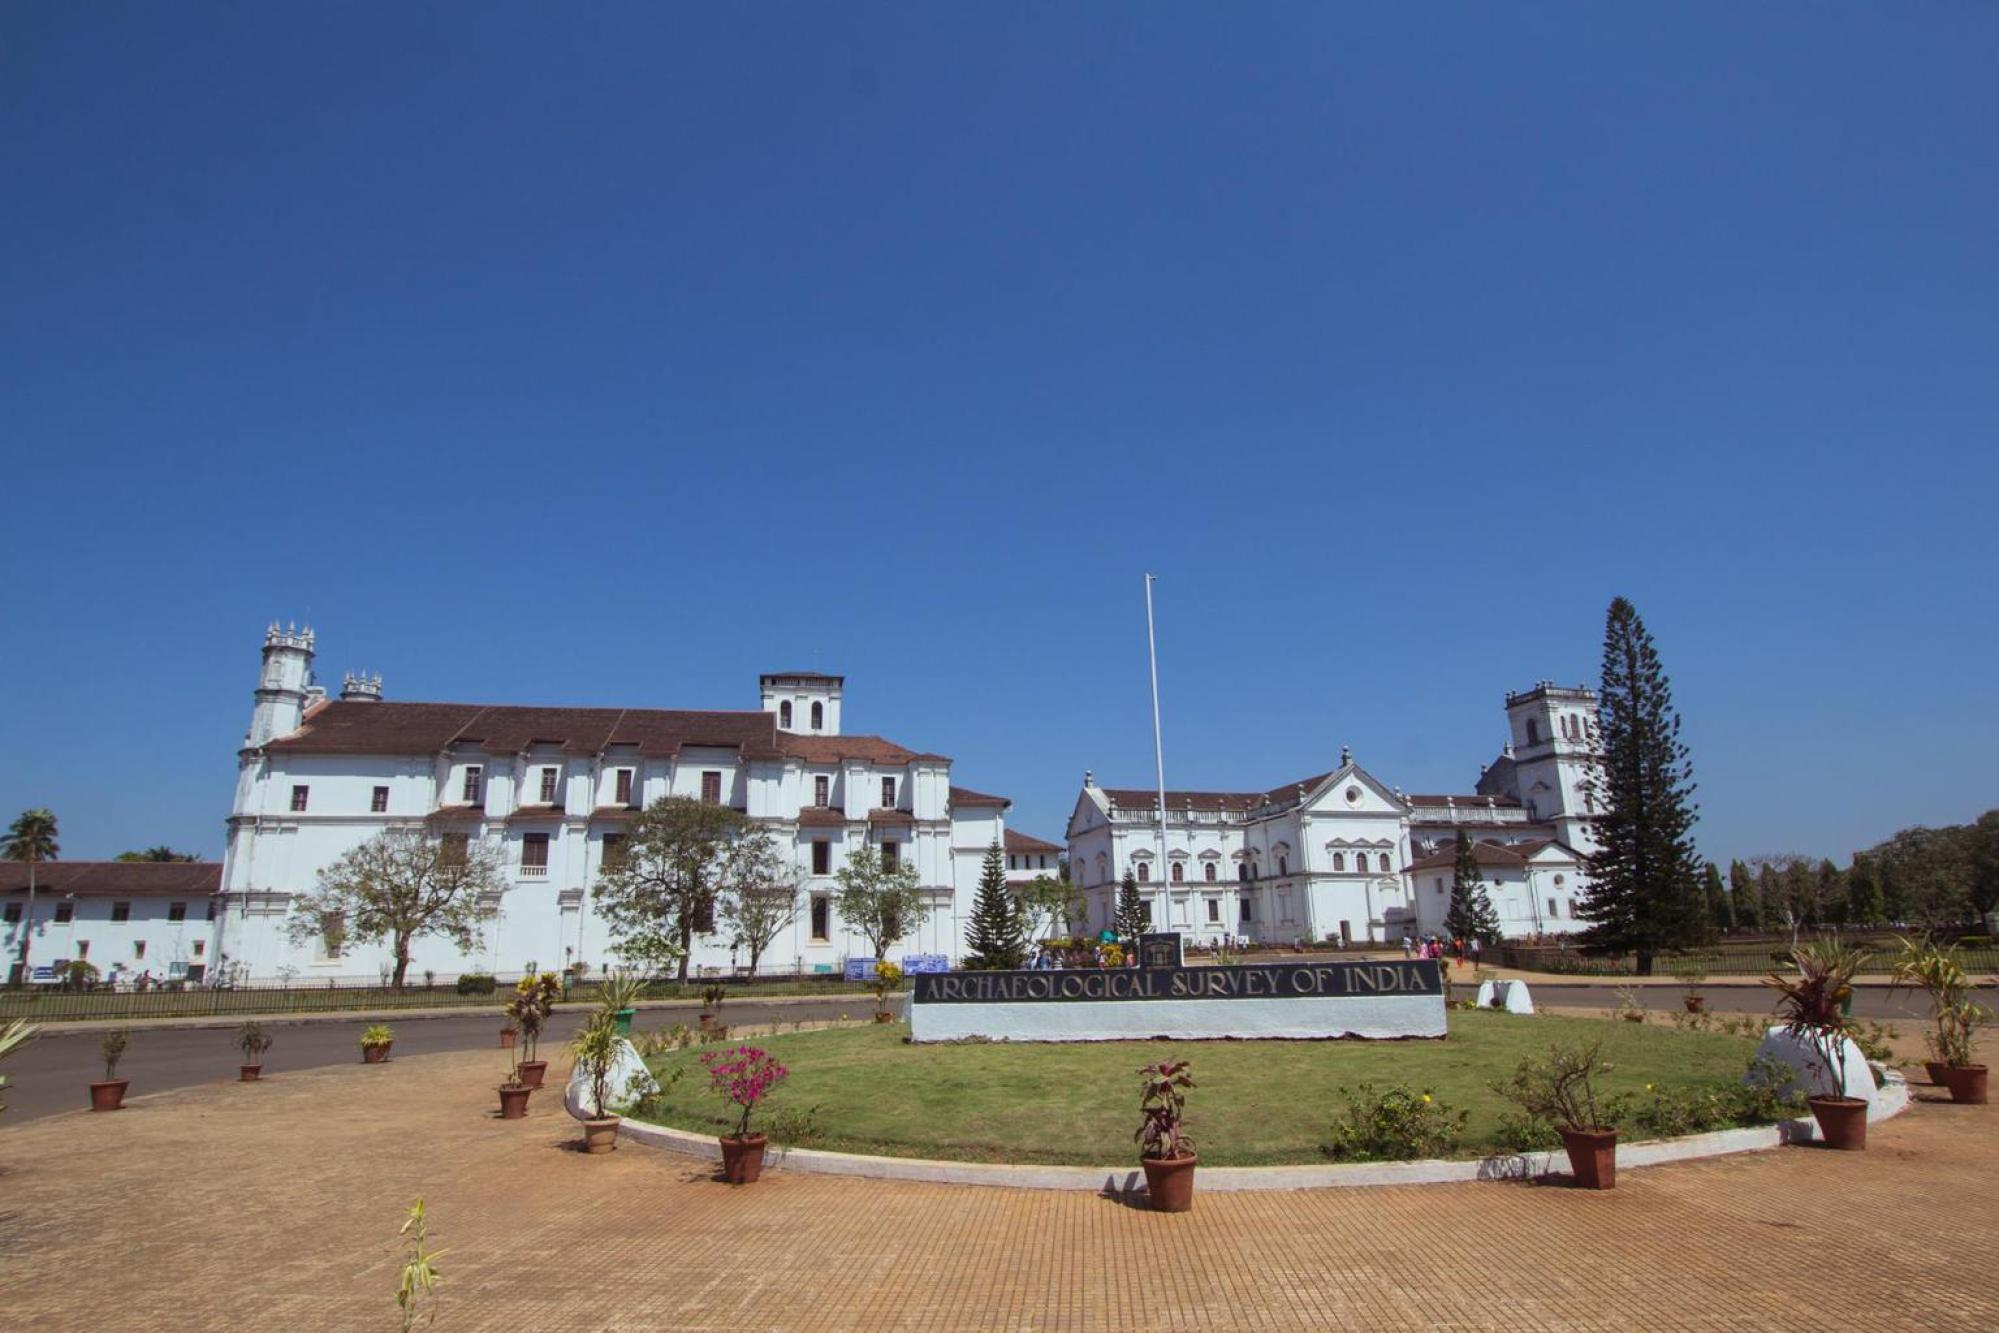 Goa Cathedral Se. Photo by Jinson Abraham (@JinsonAbraham) for the Ministry of Tourism and Government of India